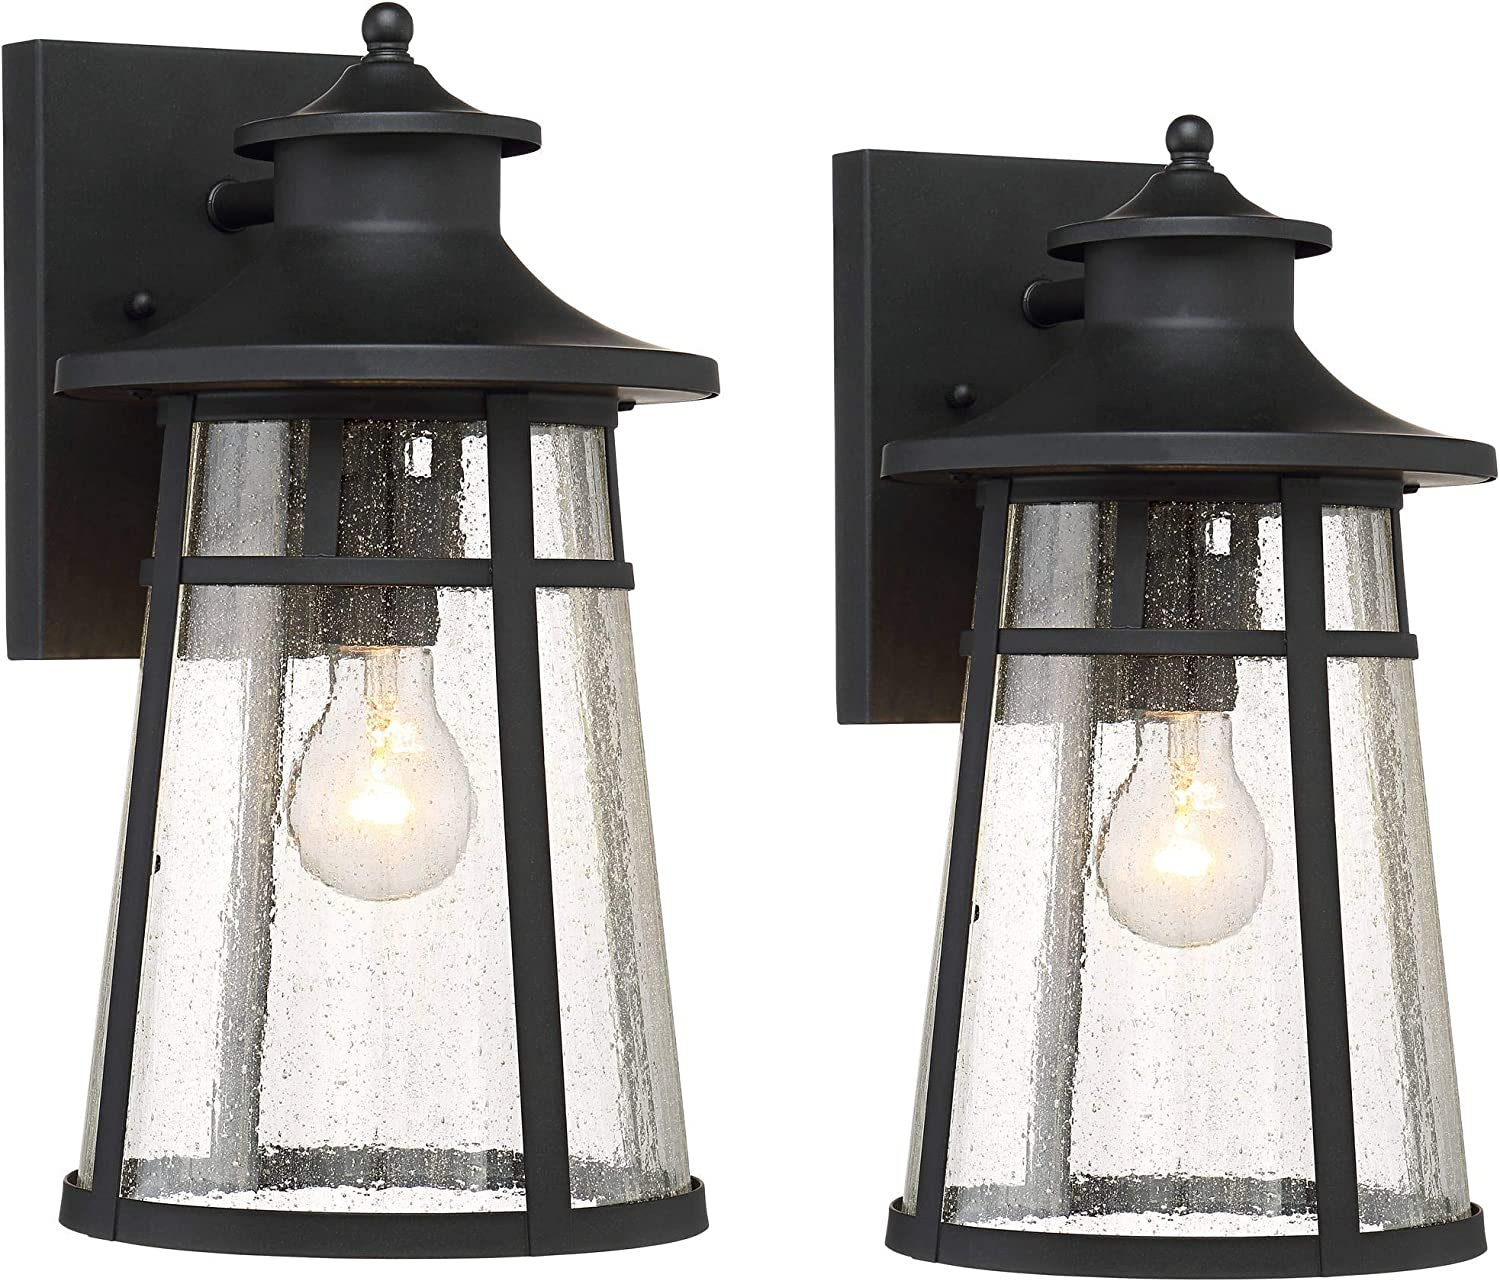 Clement Los Angeles Mall Mission Outdoor Wall Light Fixtures Max 48% OFF 2 Iron B of Cast Set